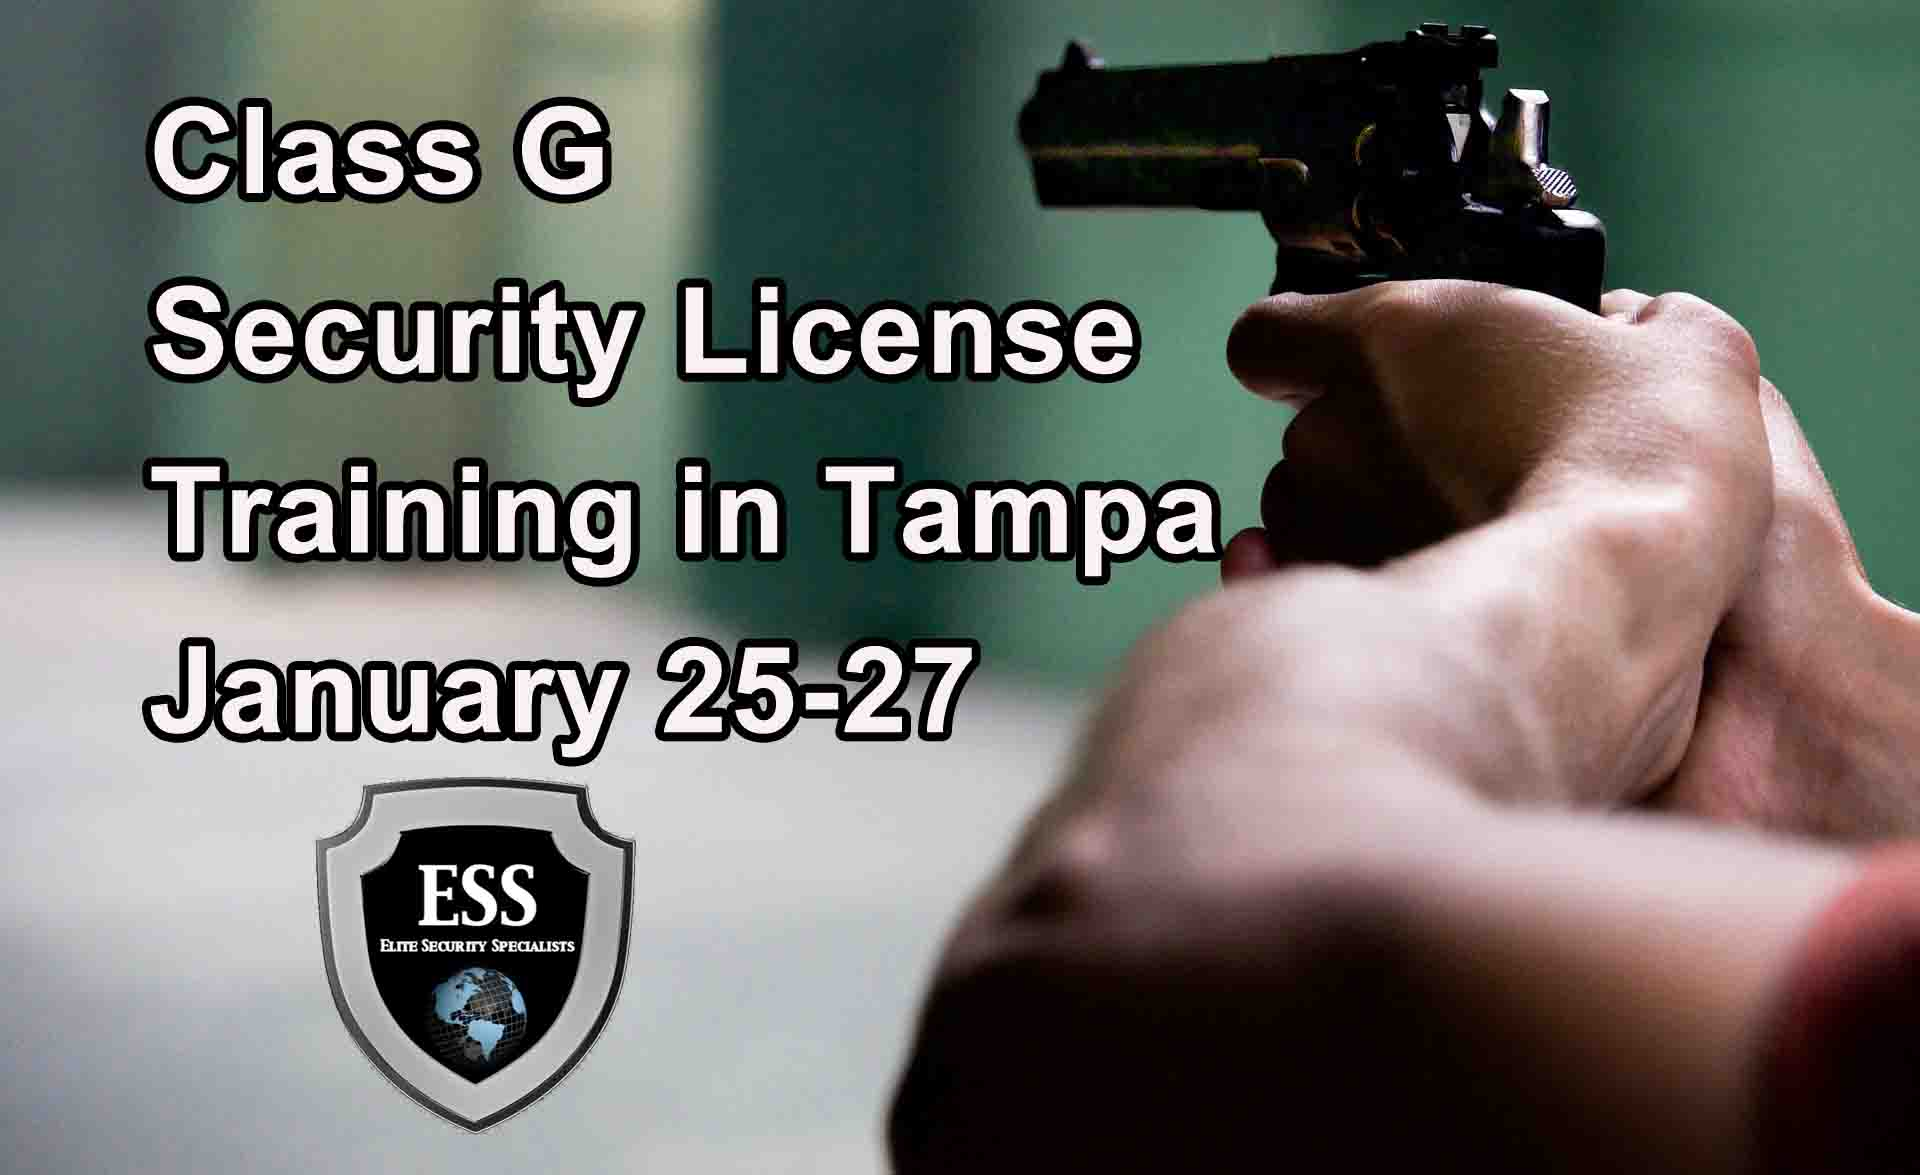 Class G Security License Training in Tampa JAN